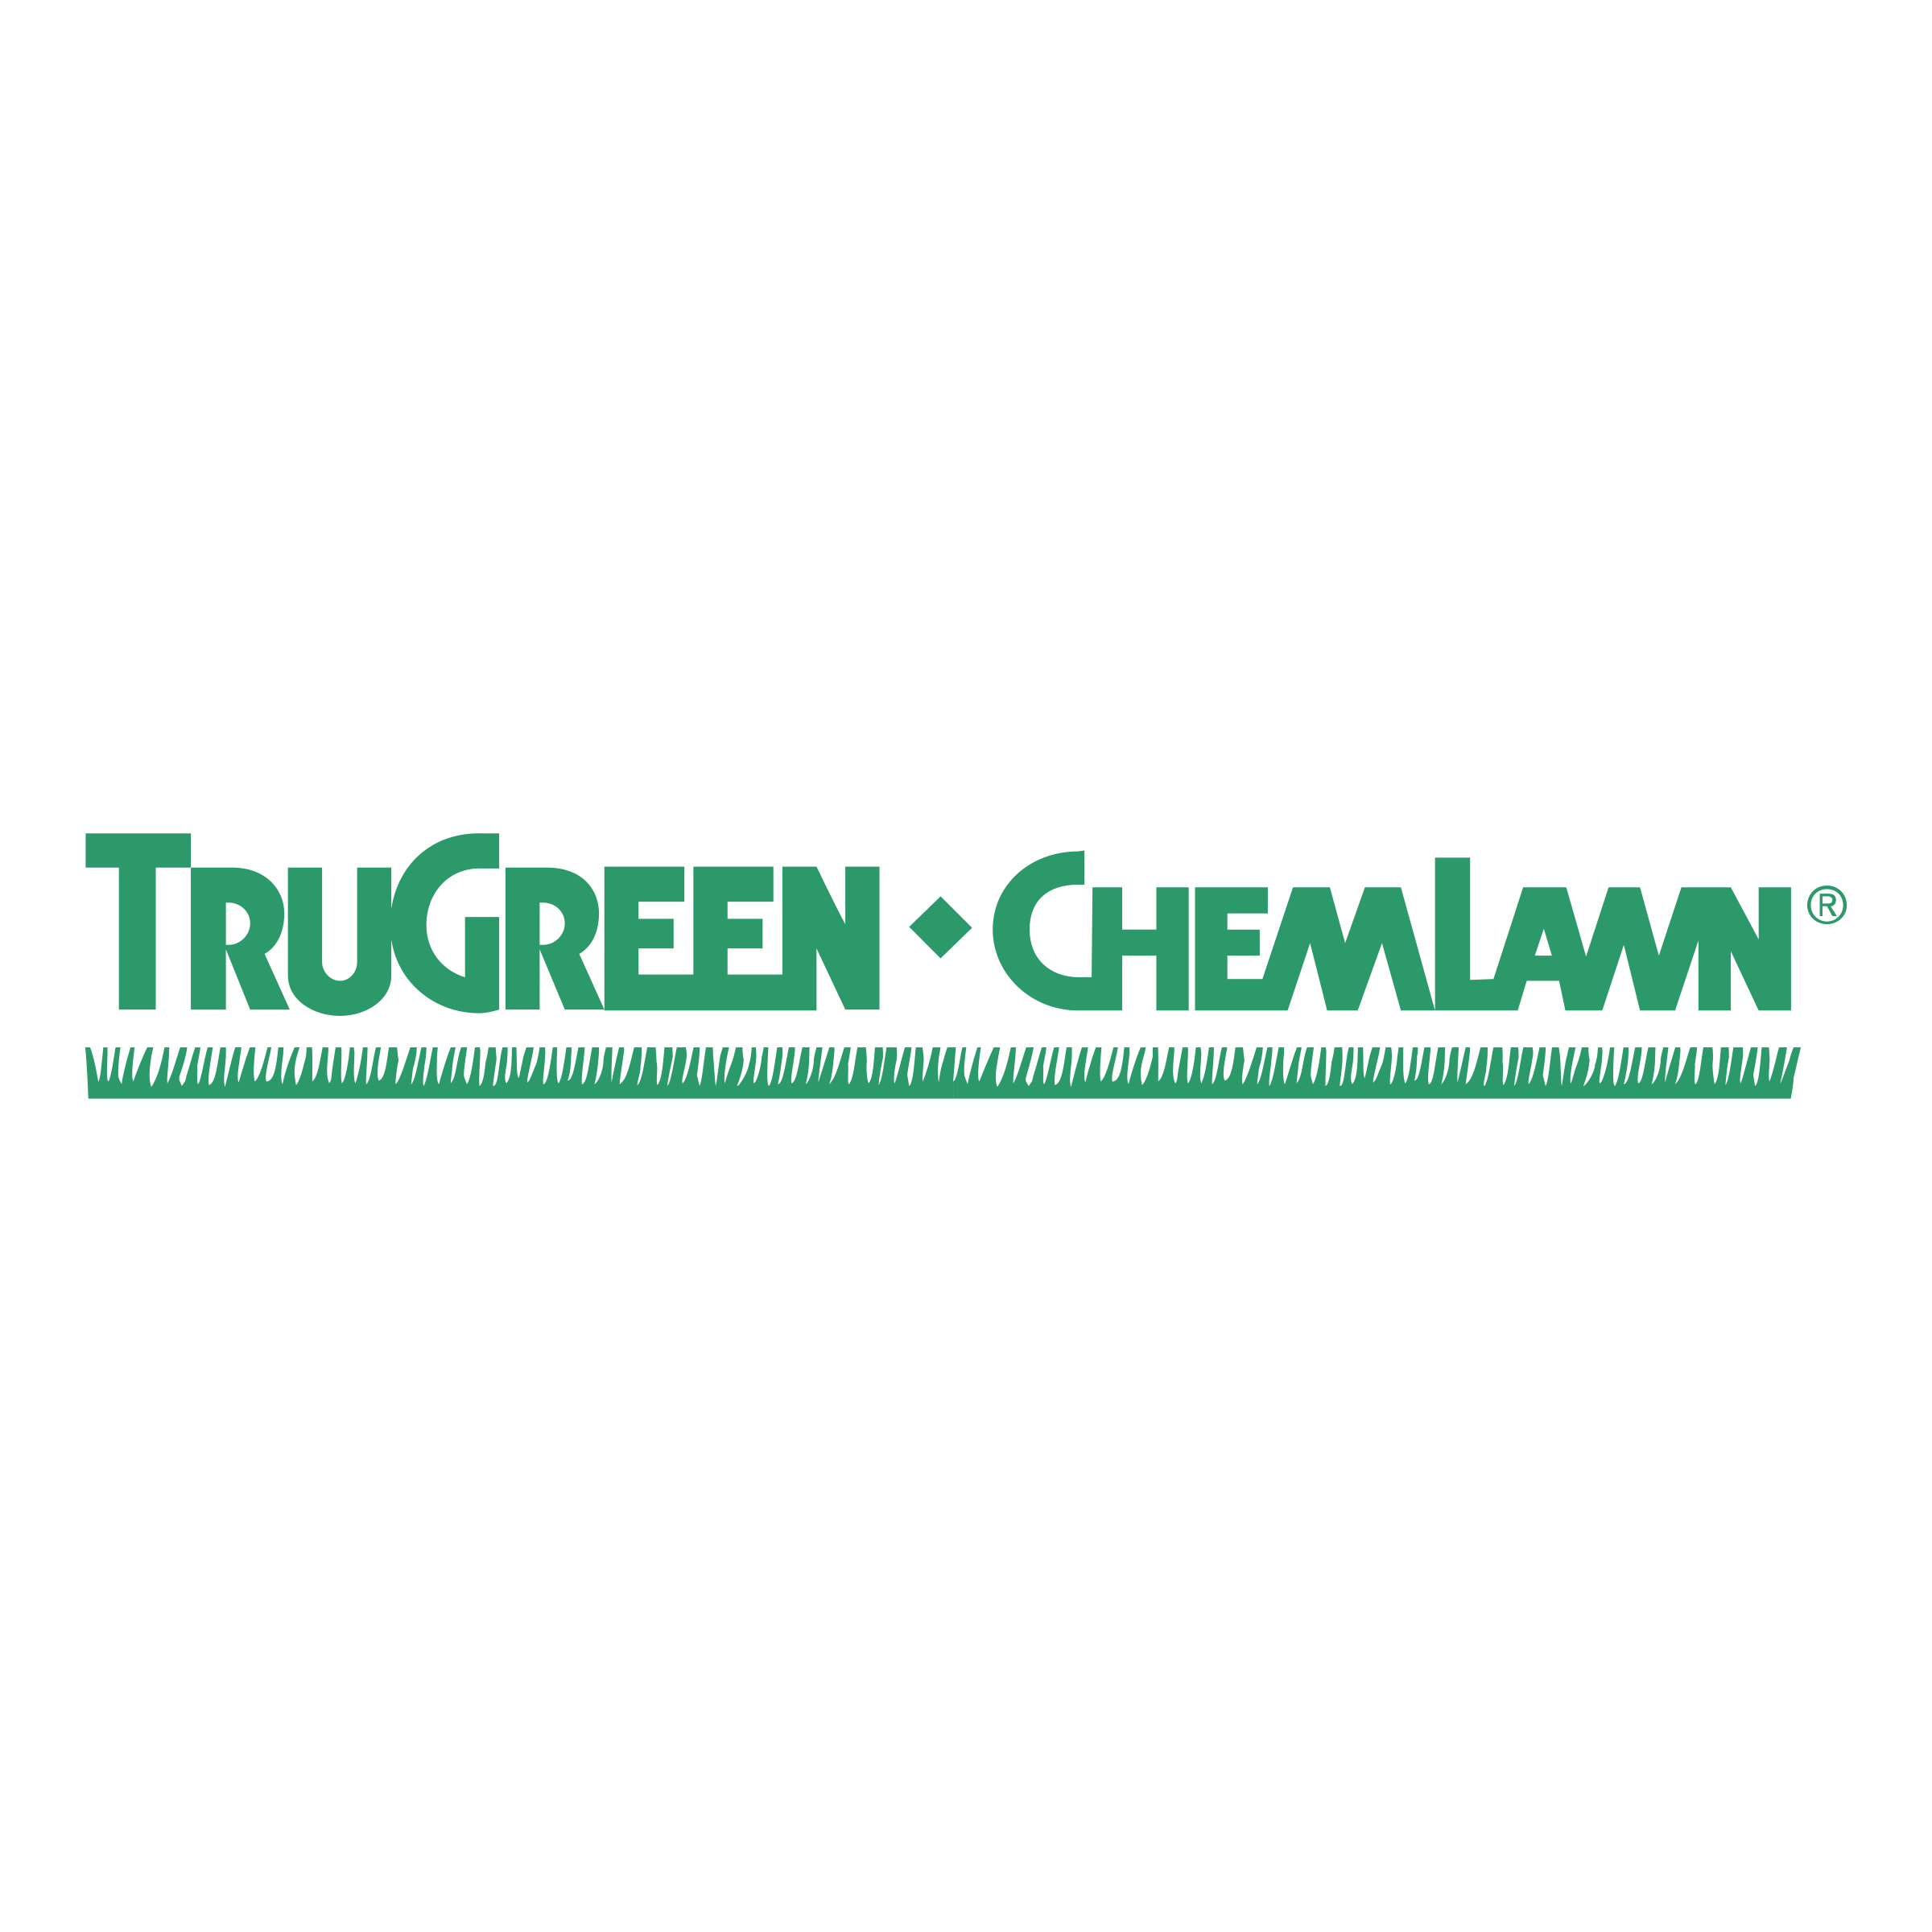 TruGreen ChemLawn Logo PNG Transparent & SVG Vector.